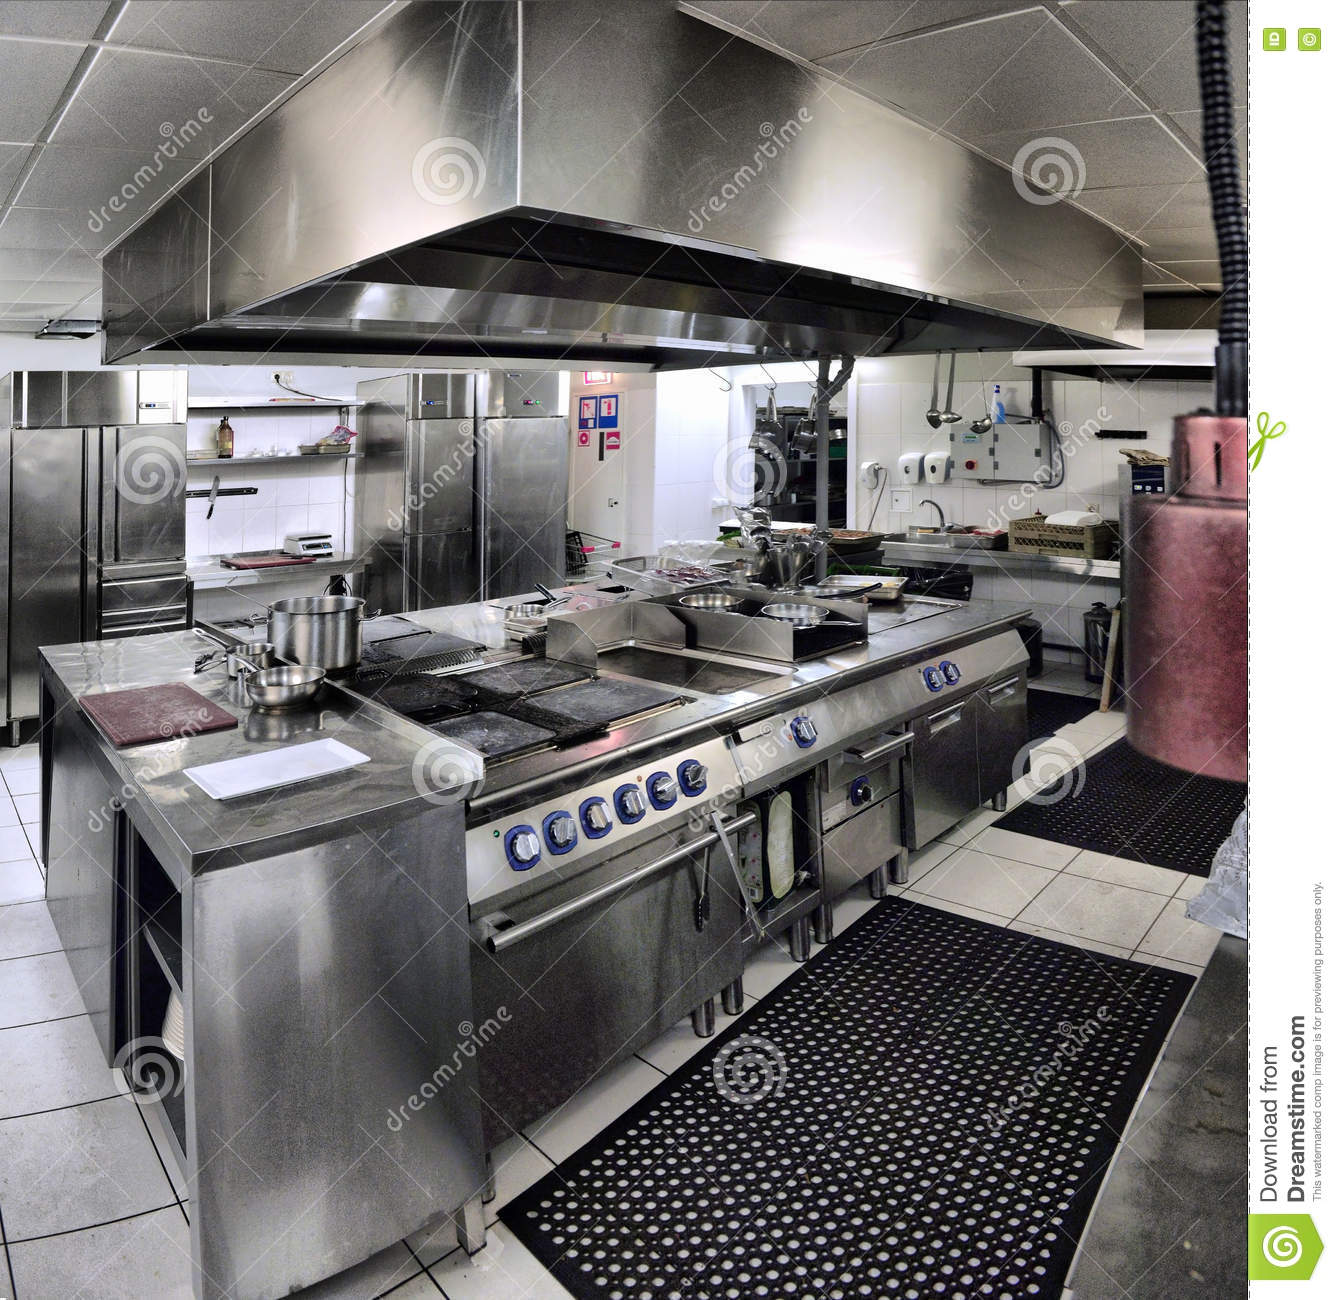 Interior of a restaurant kitchen stock photography